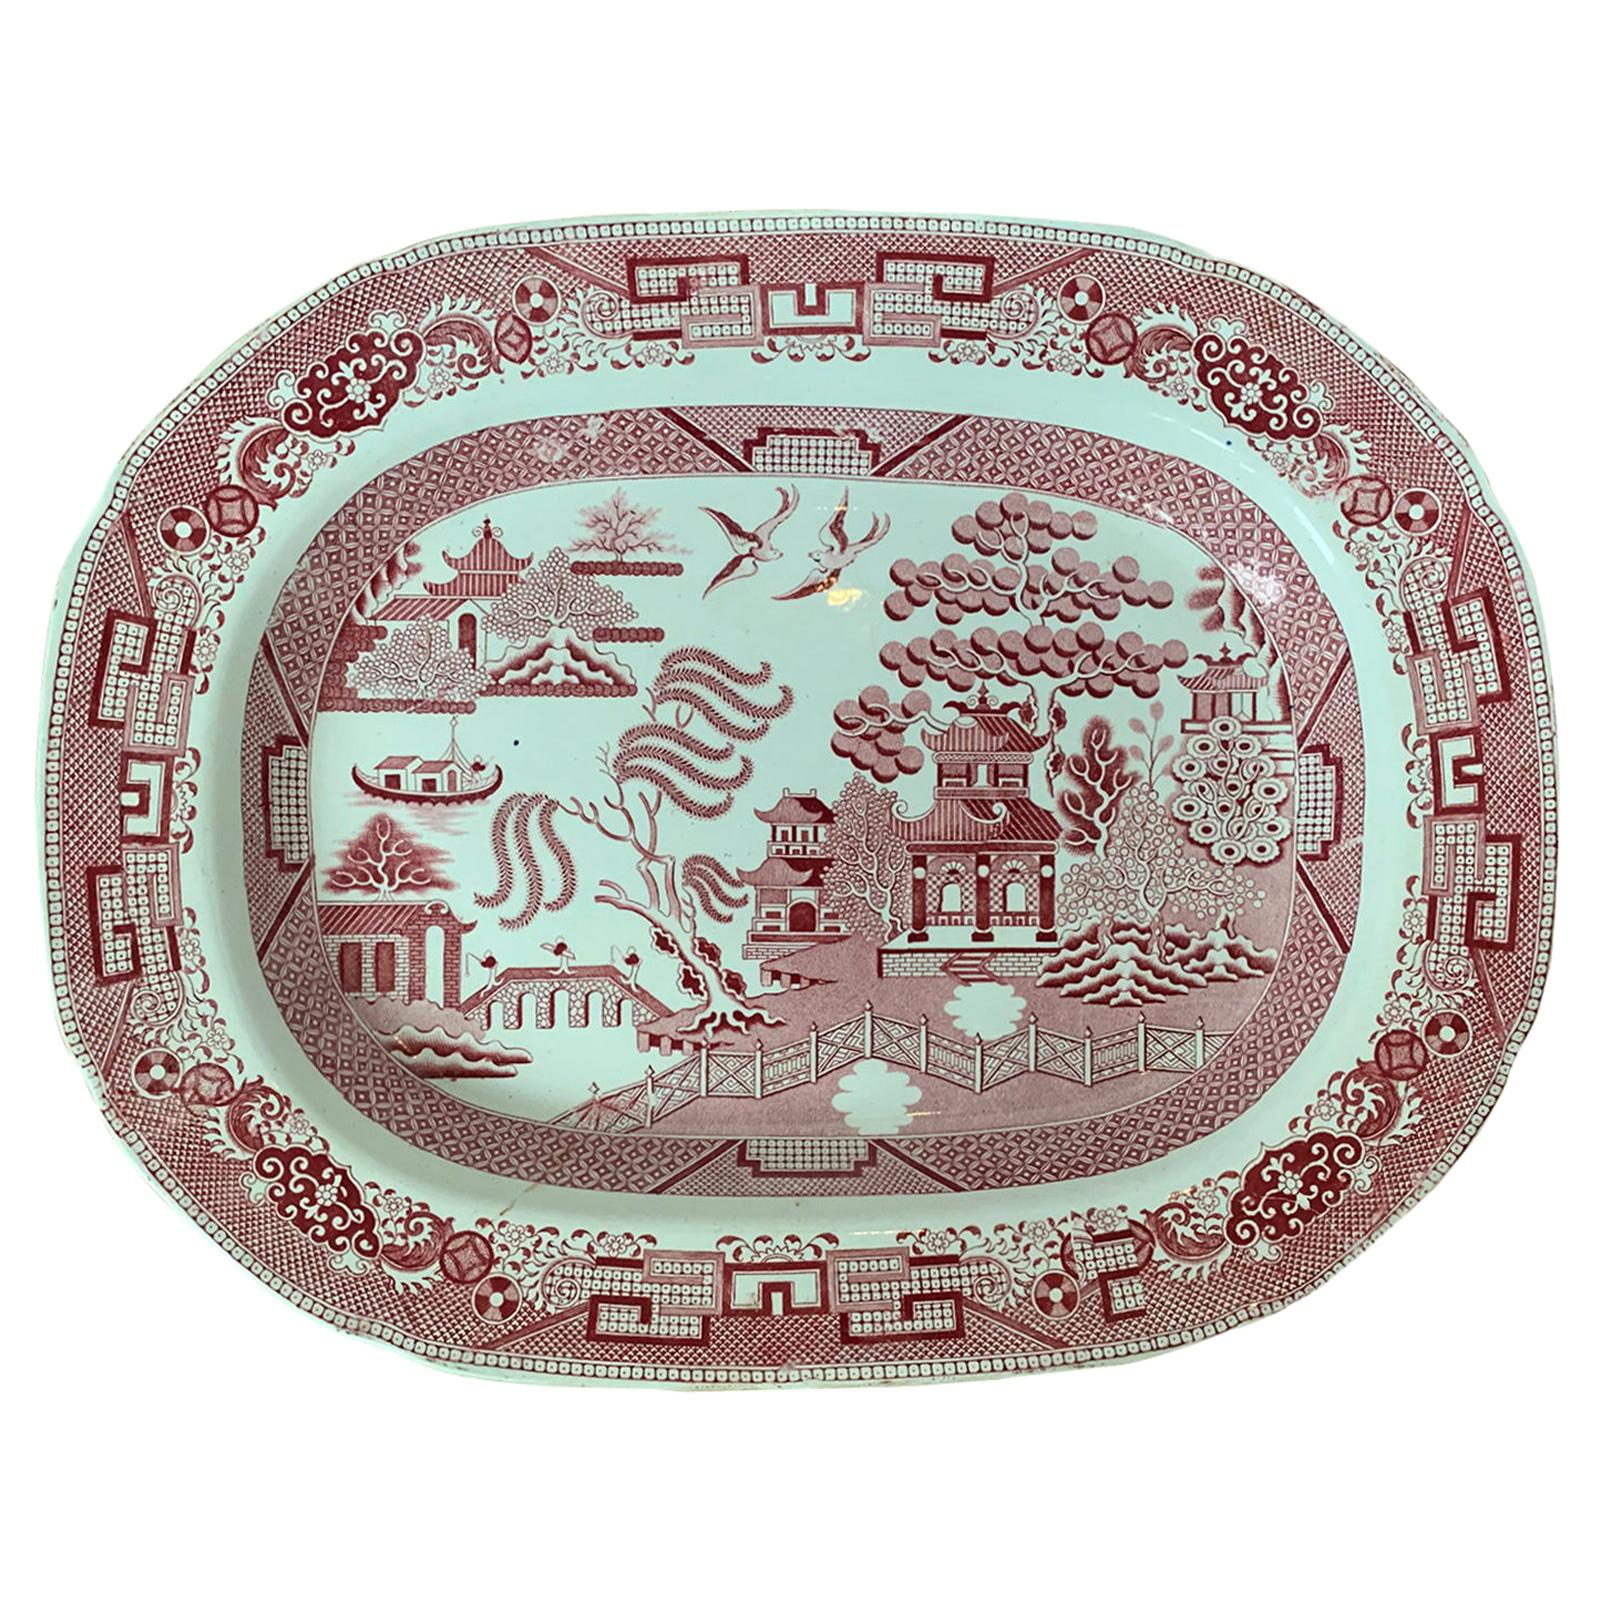 19th Century English Staffordshire Willow Pattern Charger by Davenport, Marked